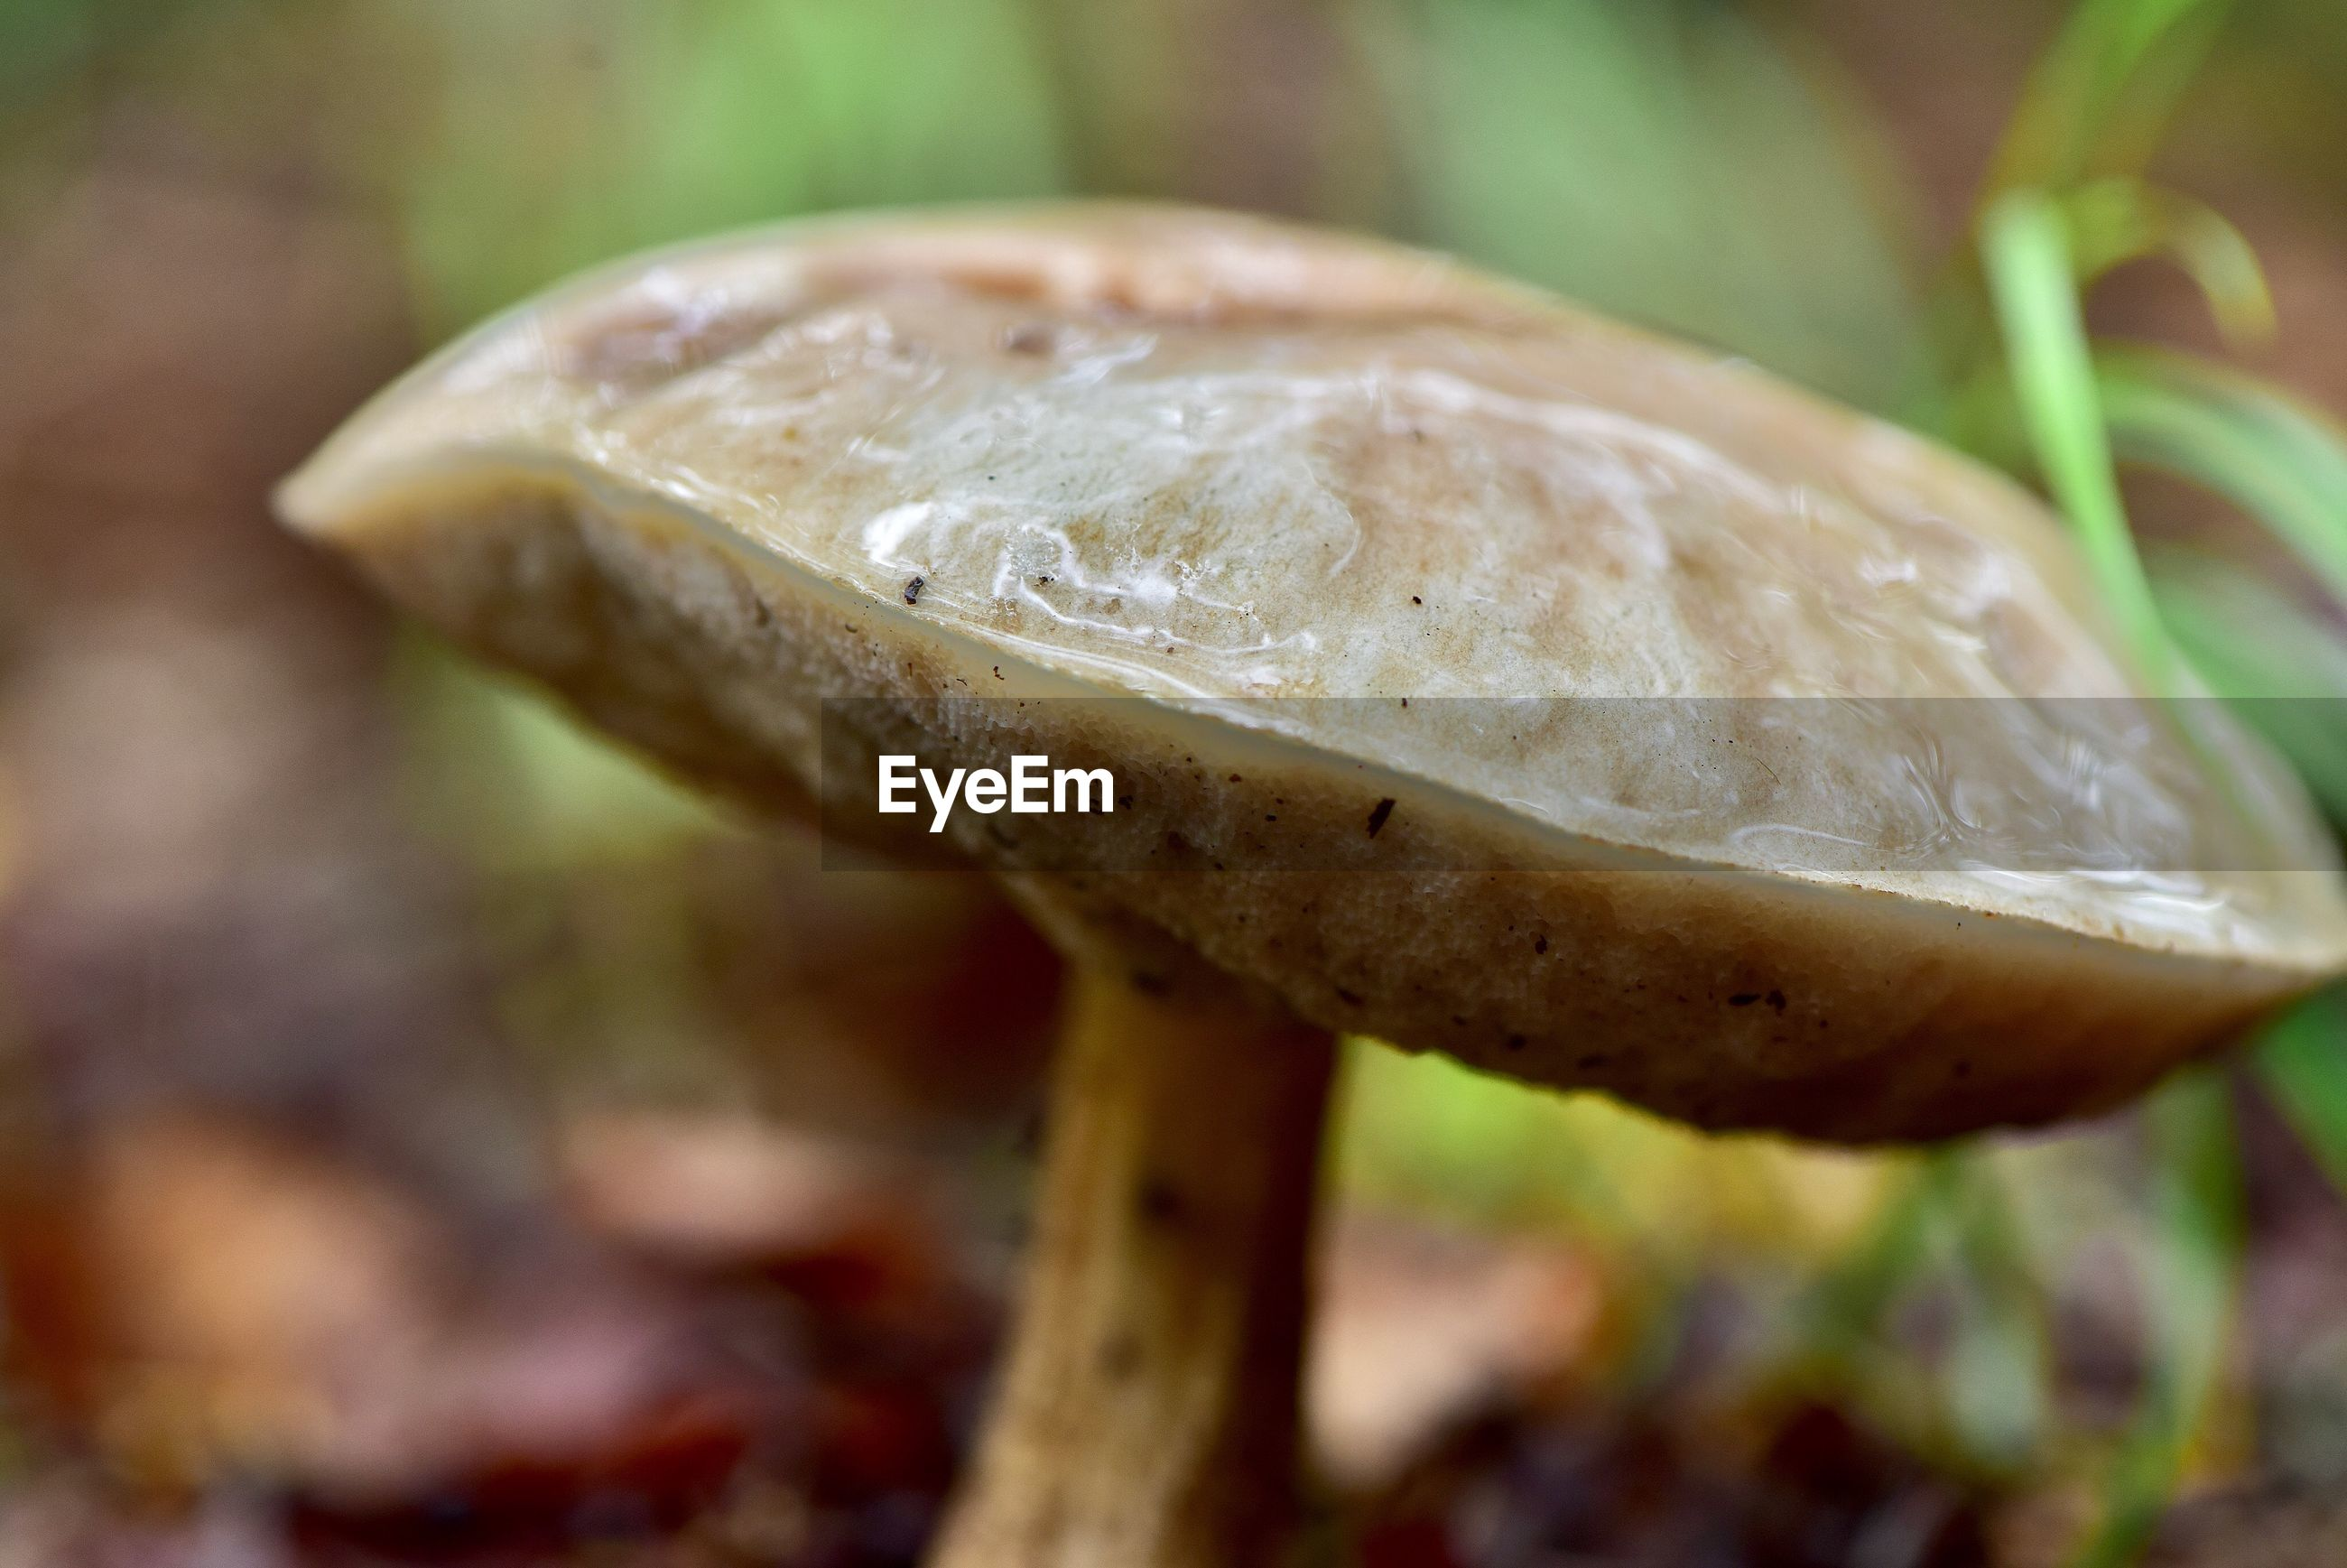 mushroom, fungus, food, close-up, vegetable, focus on foreground, growth, plant, edible mushroom, no people, toadstool, freshness, selective focus, day, land, nature, beauty in nature, food and drink, vulnerability, fragility, outdoors